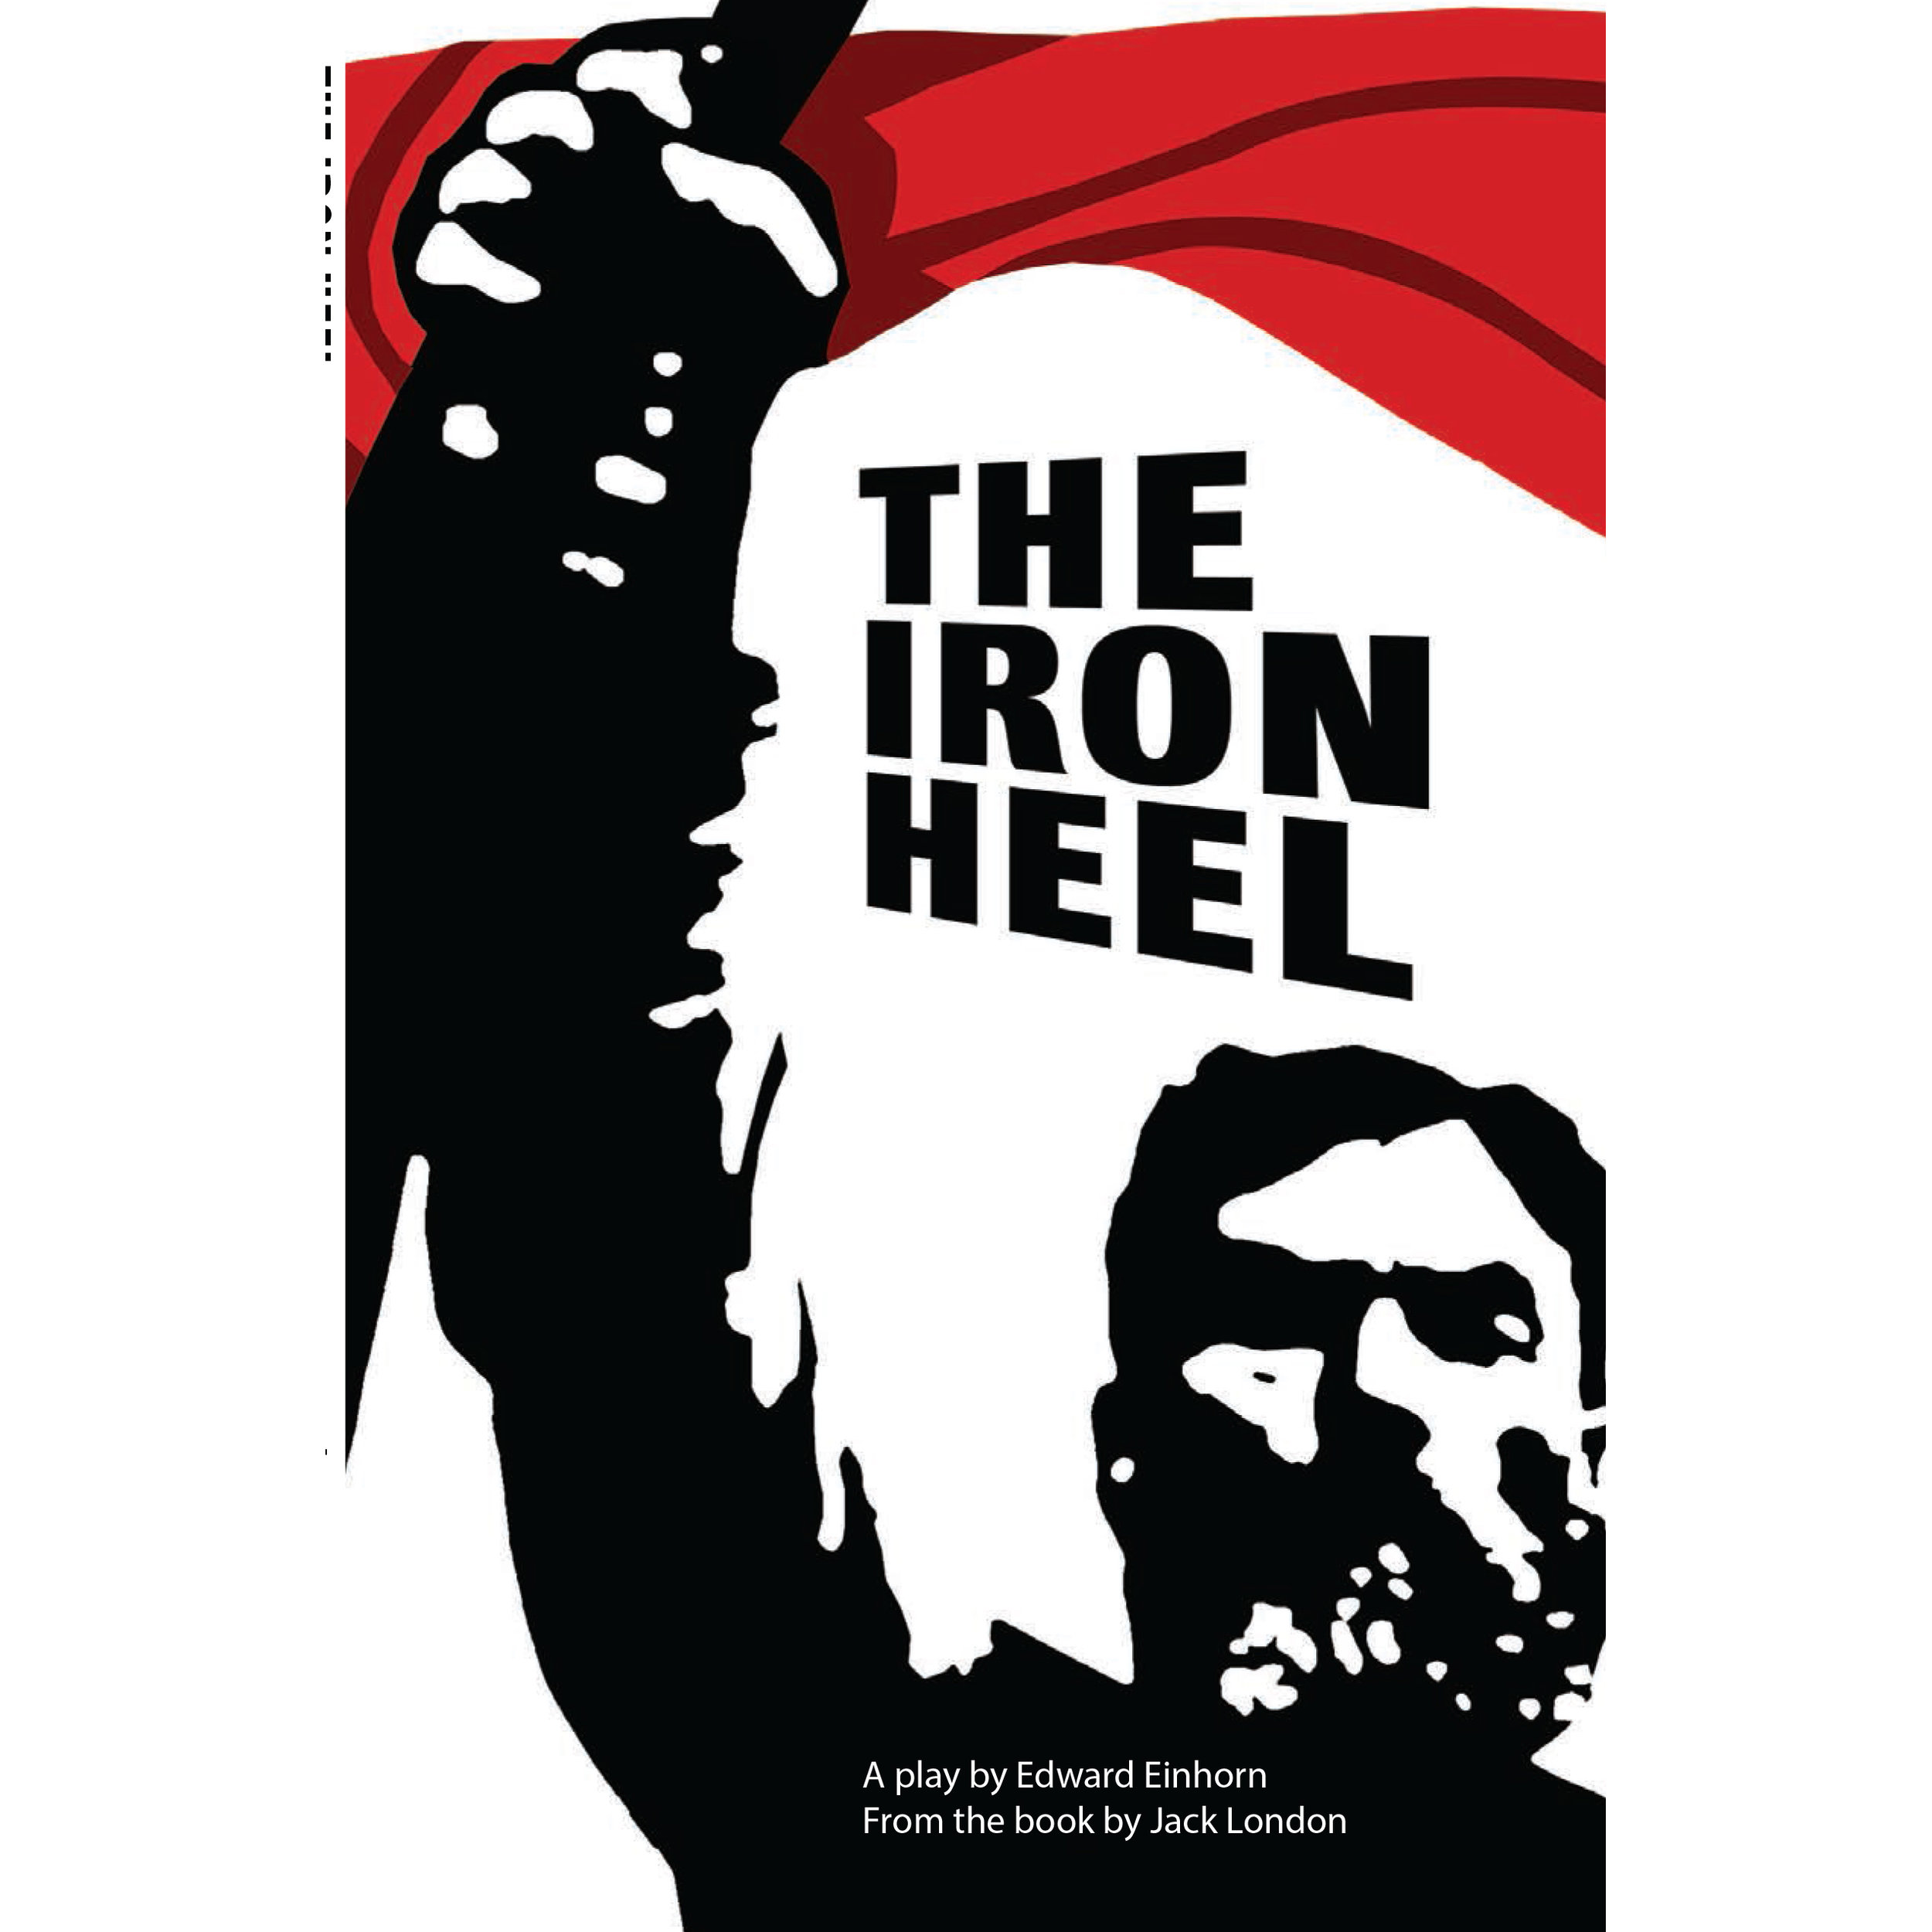 The Iron Heel - The stage adaptation of Jack London's 1908 novel. The first modern dystopian novel, written by London as a socialist propaganda piece. An election between a socialist candidate and an oligarch. What happens if the oligarch wins?The play is punctuated by classic folk songs, with altered lyrics that comment on the action. From Theater 61 Press.